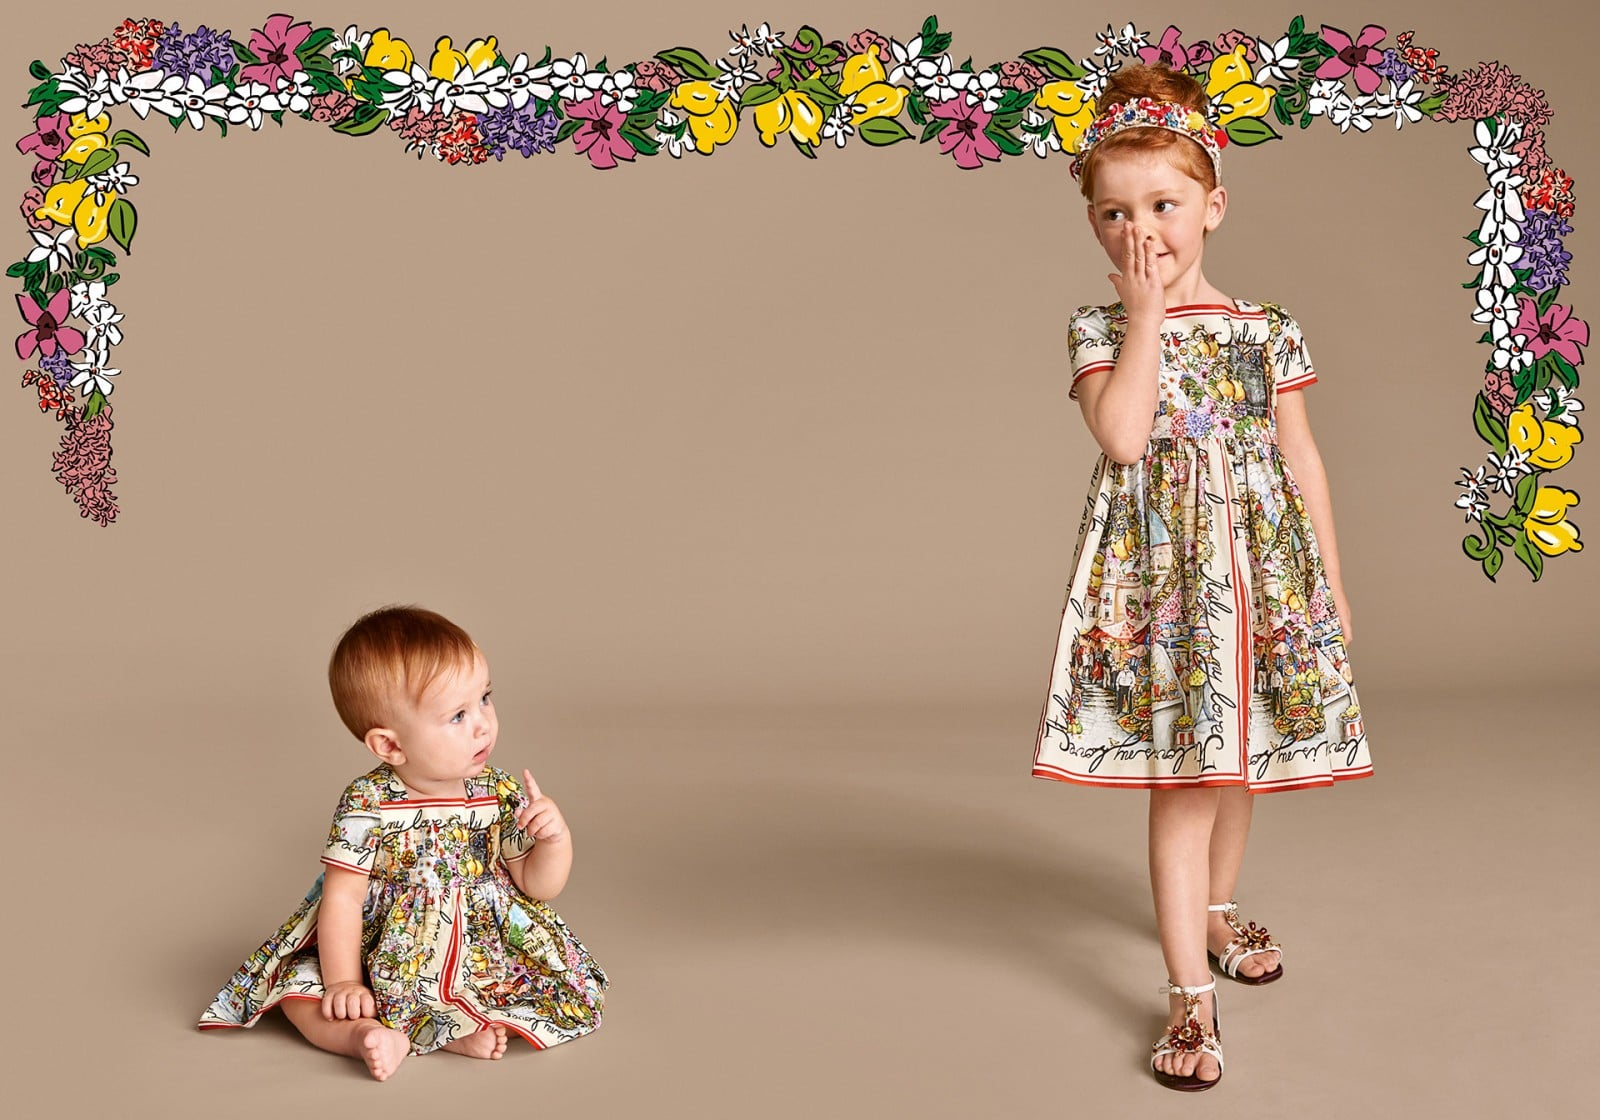 dolce-and-gabbana-summer-2016-child-collection-461-1600x1120.jpg